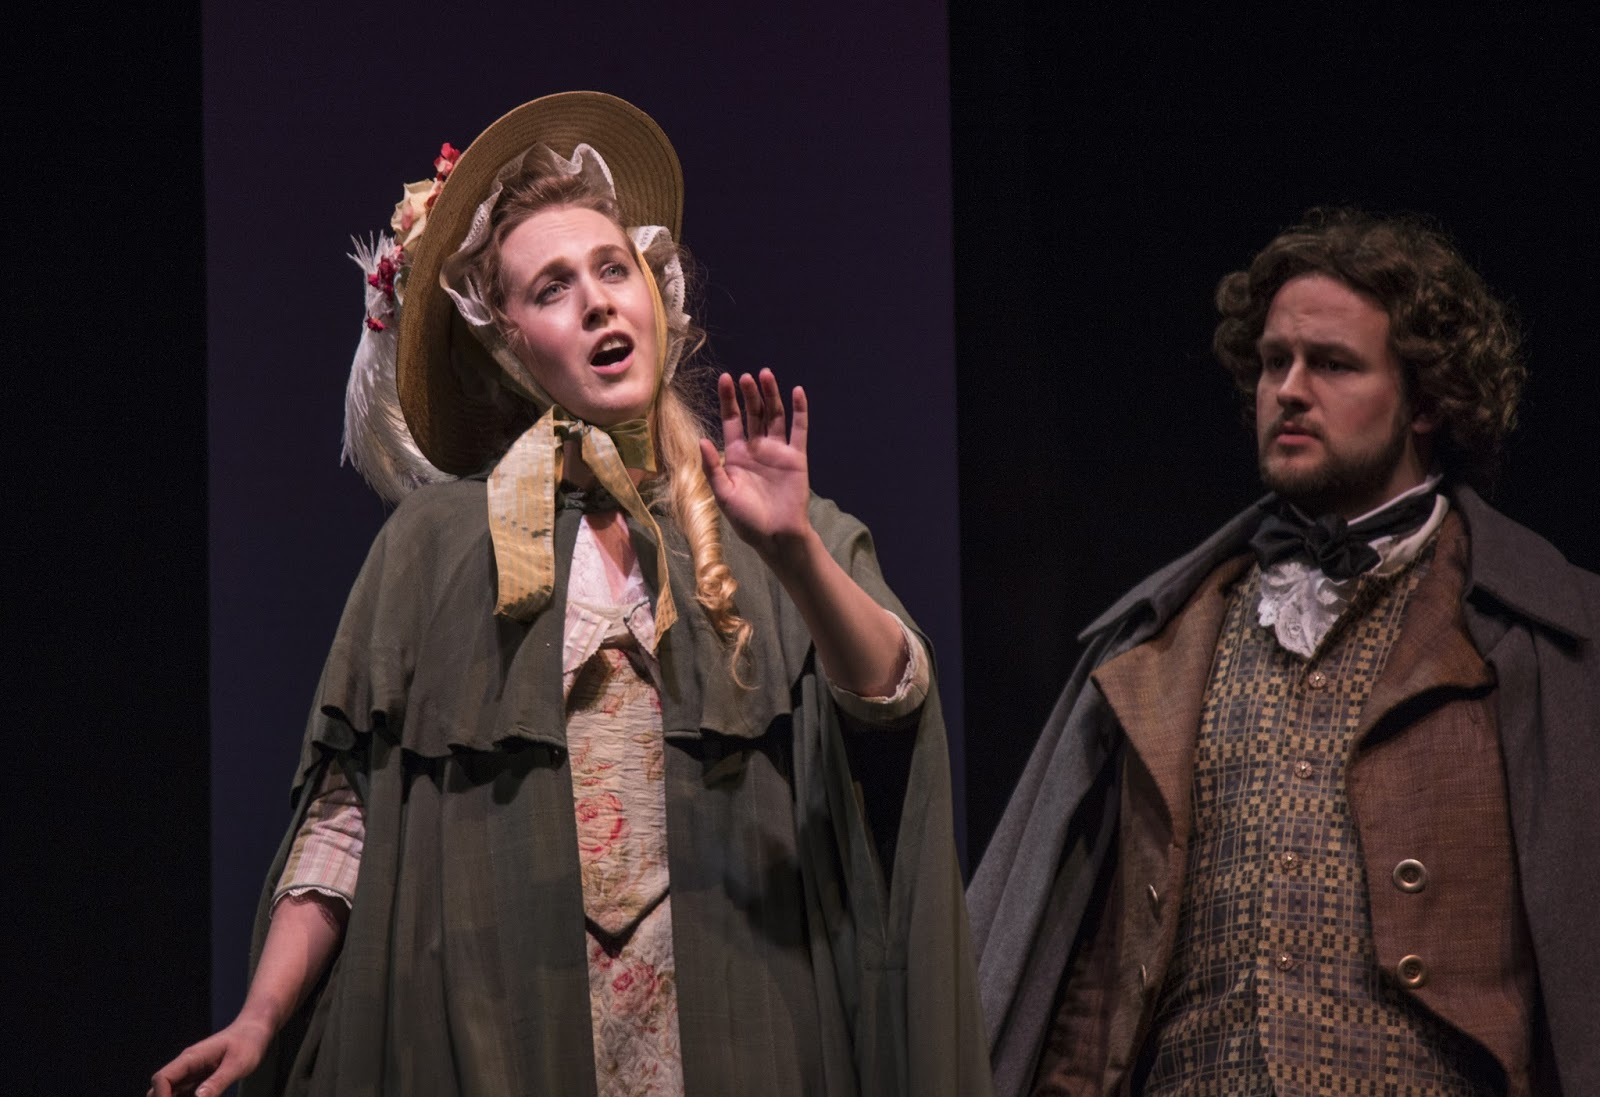 IN PERFORMANCE: Soprano ASHLEY OLIVEIRA as Blanche de la Force (left; performing on 8 April) and tenor DEREK JACKENHEIMER as the Chevalier de la Force (right) in UNCG Opera Theatre's production of Francis Poulenc's DIALOGUES OF THE CARMELITES, April 2016 [Photo by Rachel Anthony, © by rayphotographyco.com]